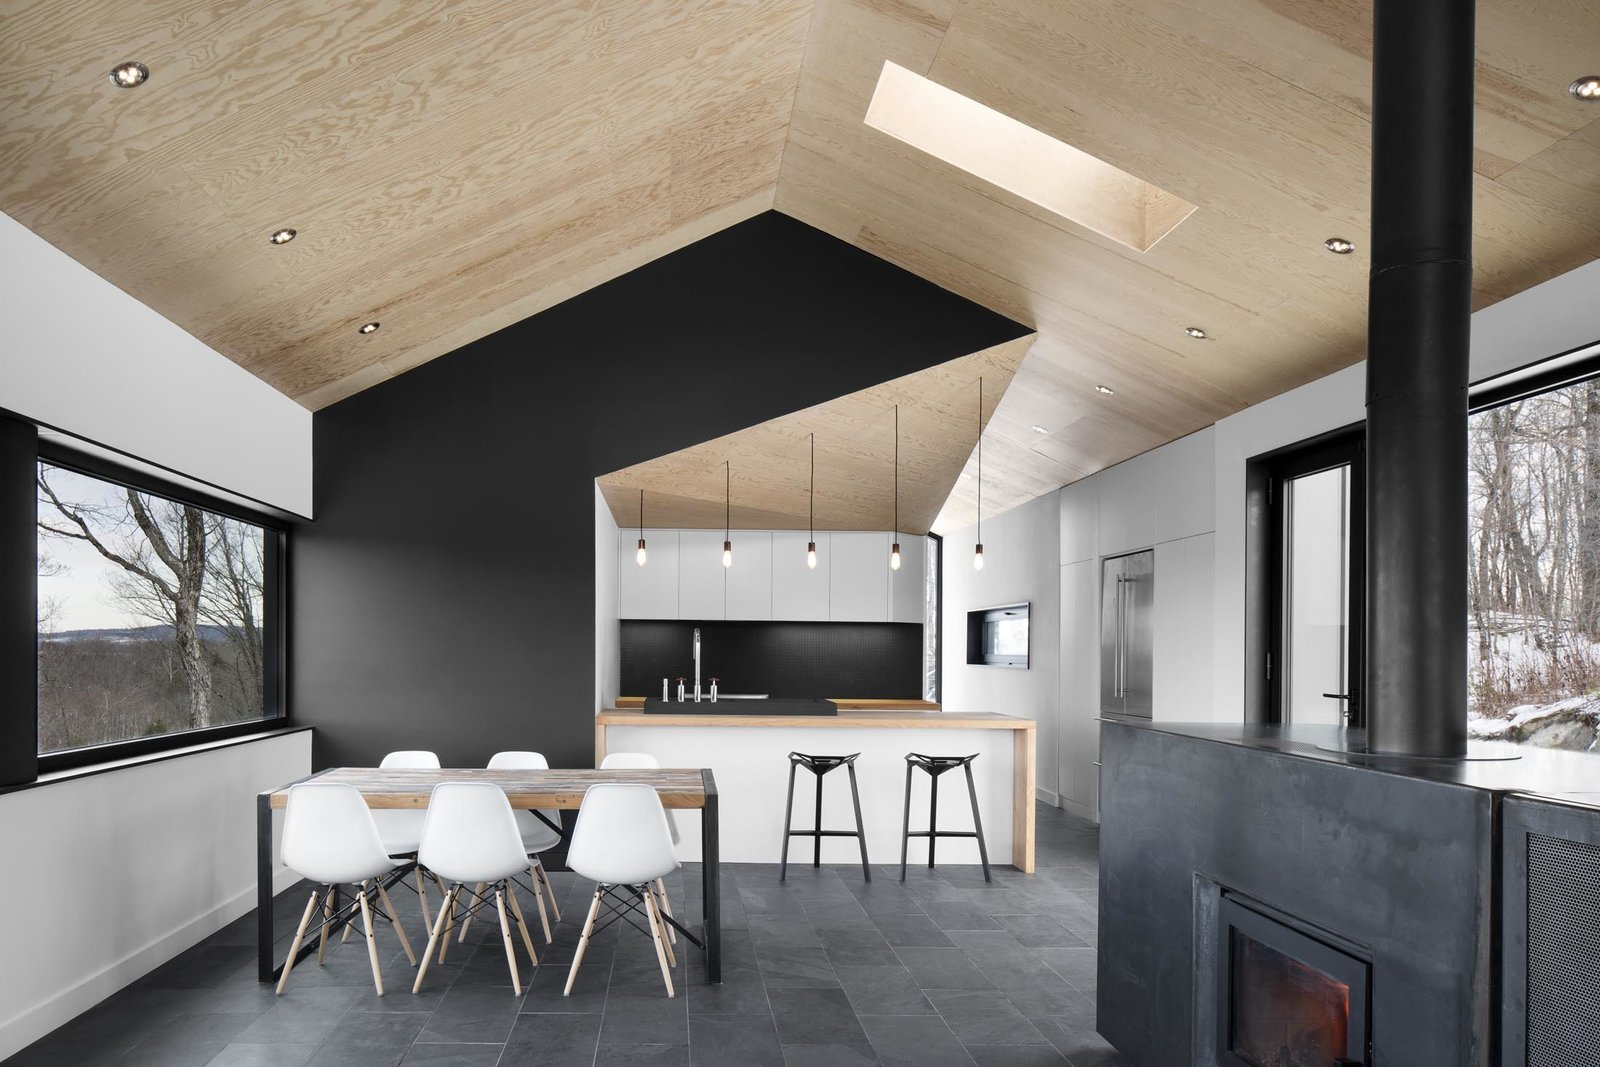 """Dining Room, Table, and Chair The architects stuck to a gray-scale color palette, installing slate tile floors that softly contrast with the white walls and Eames dining chairs. """"It lets the views out the windows become the focus,"""" Dworkind explains. Doses of pure black accent important features, like the central wall that divides the kitchen and master bedroom behind it from the main living space.  Best Photos from Amazing Cantilevered Home in the Mountains"""